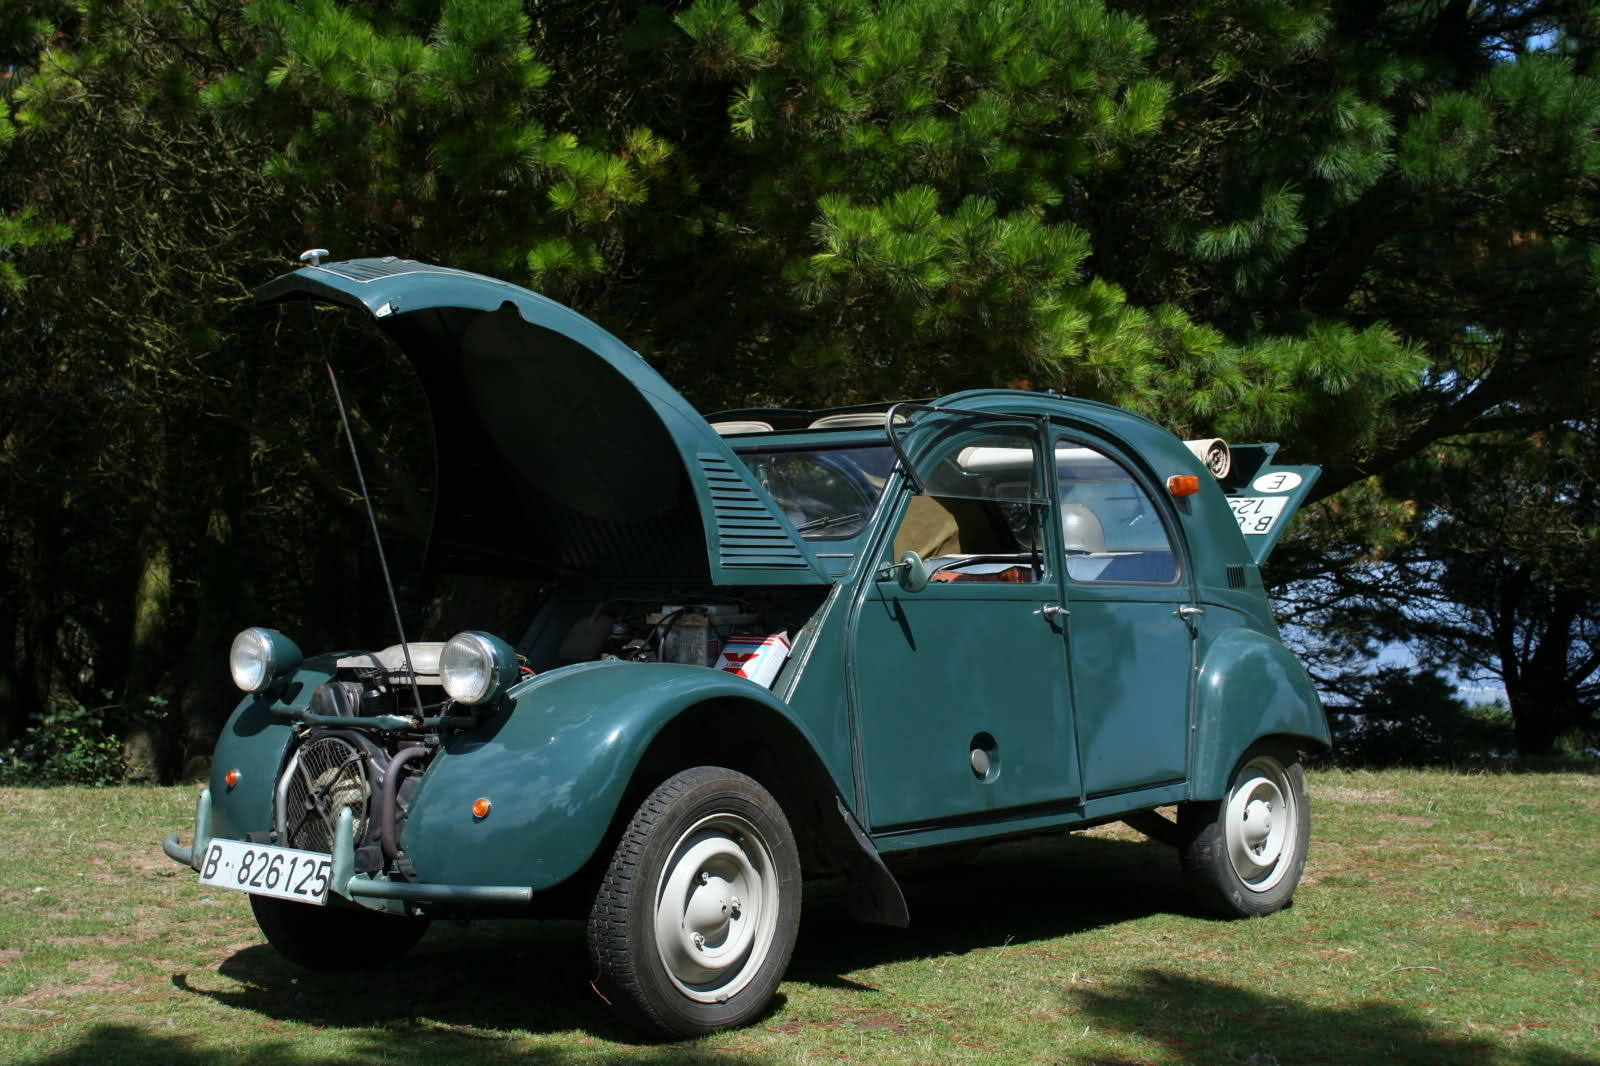 coches con historia un citro n 2cv con 2 motores citro n 2cv sahara 4x4. Black Bedroom Furniture Sets. Home Design Ideas